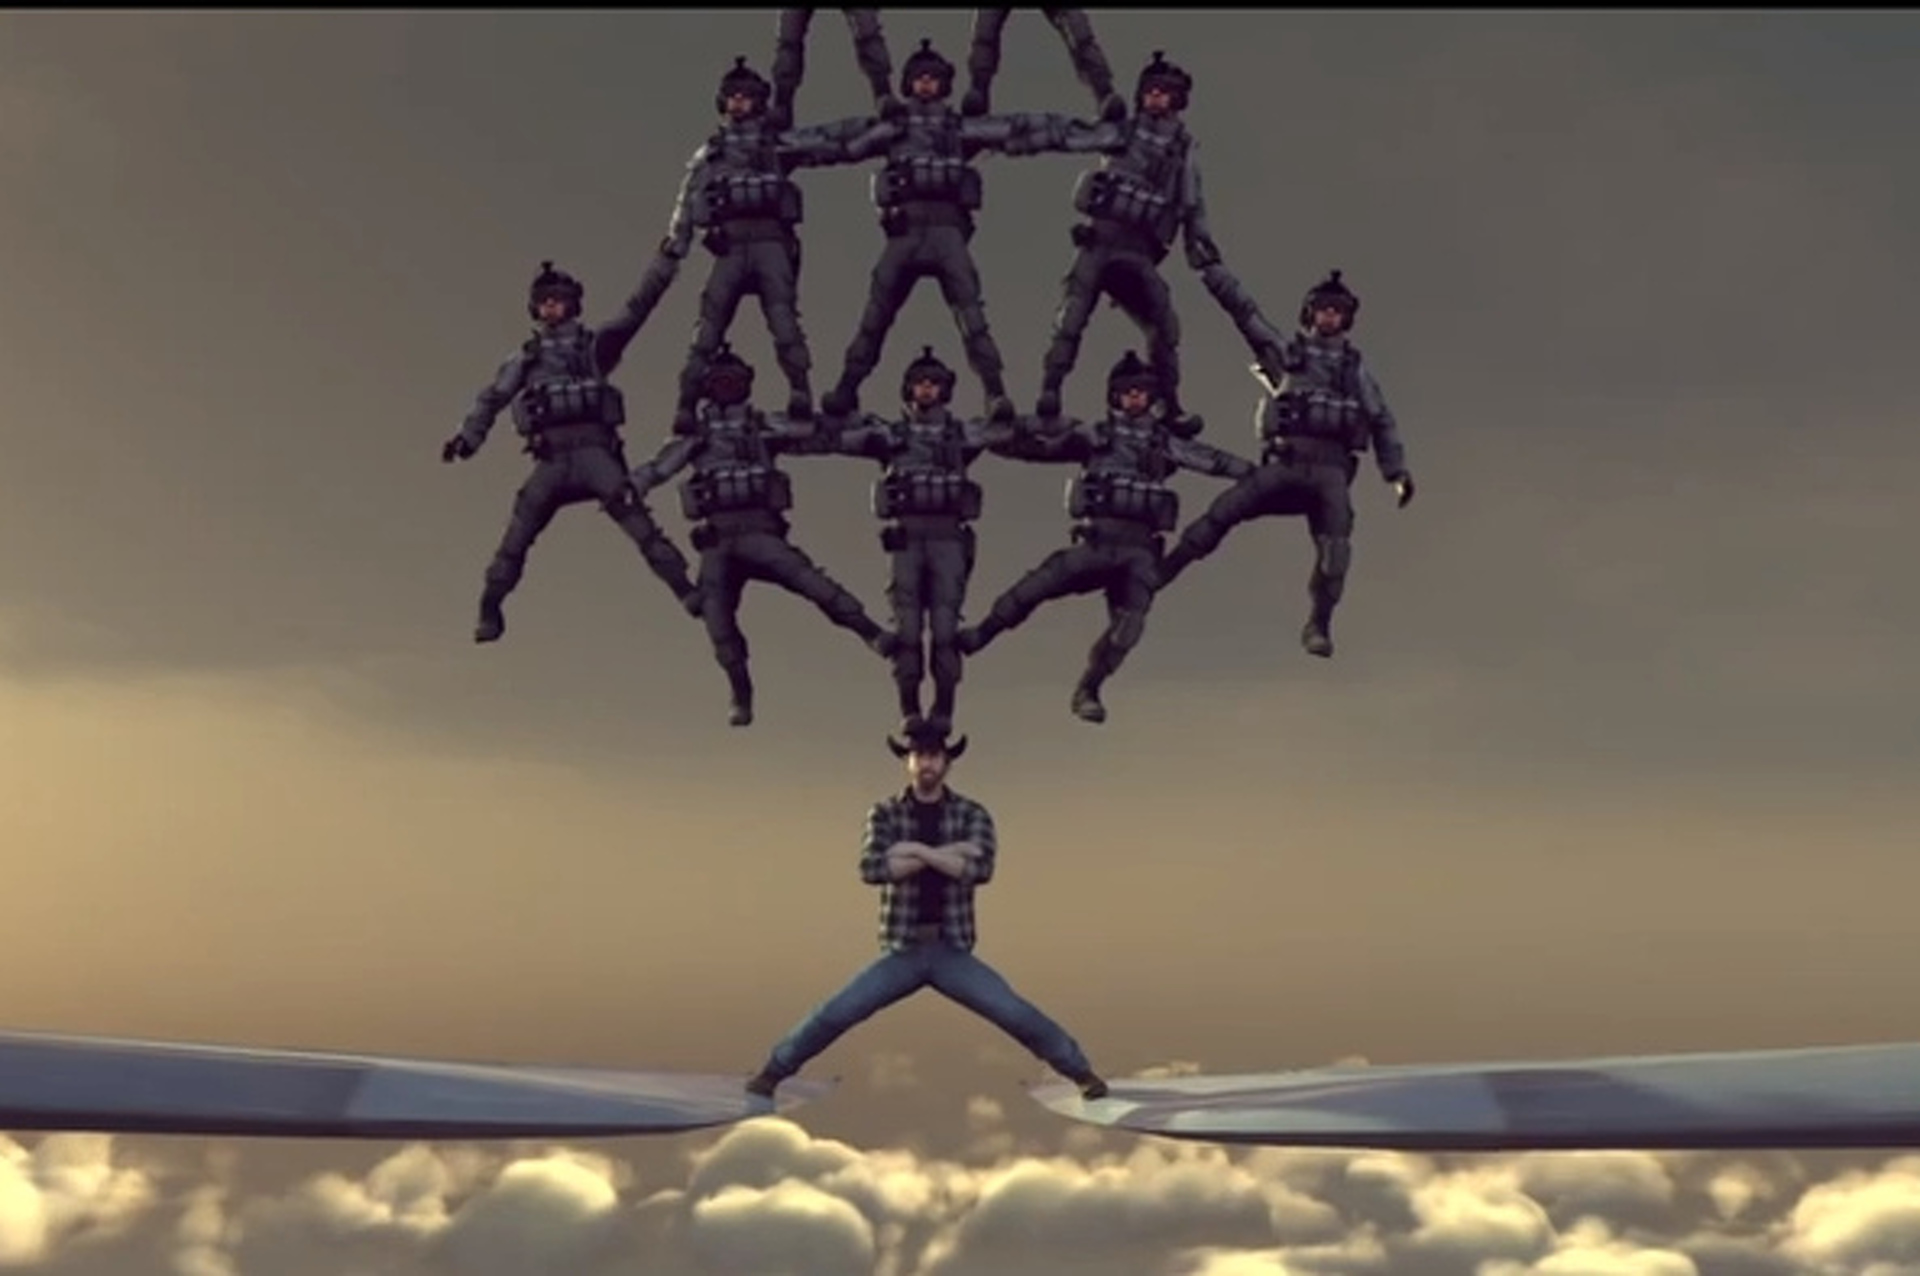 Chuck Norris One-Ups Volvo Ad by Splitting Between Two Jets! [video]